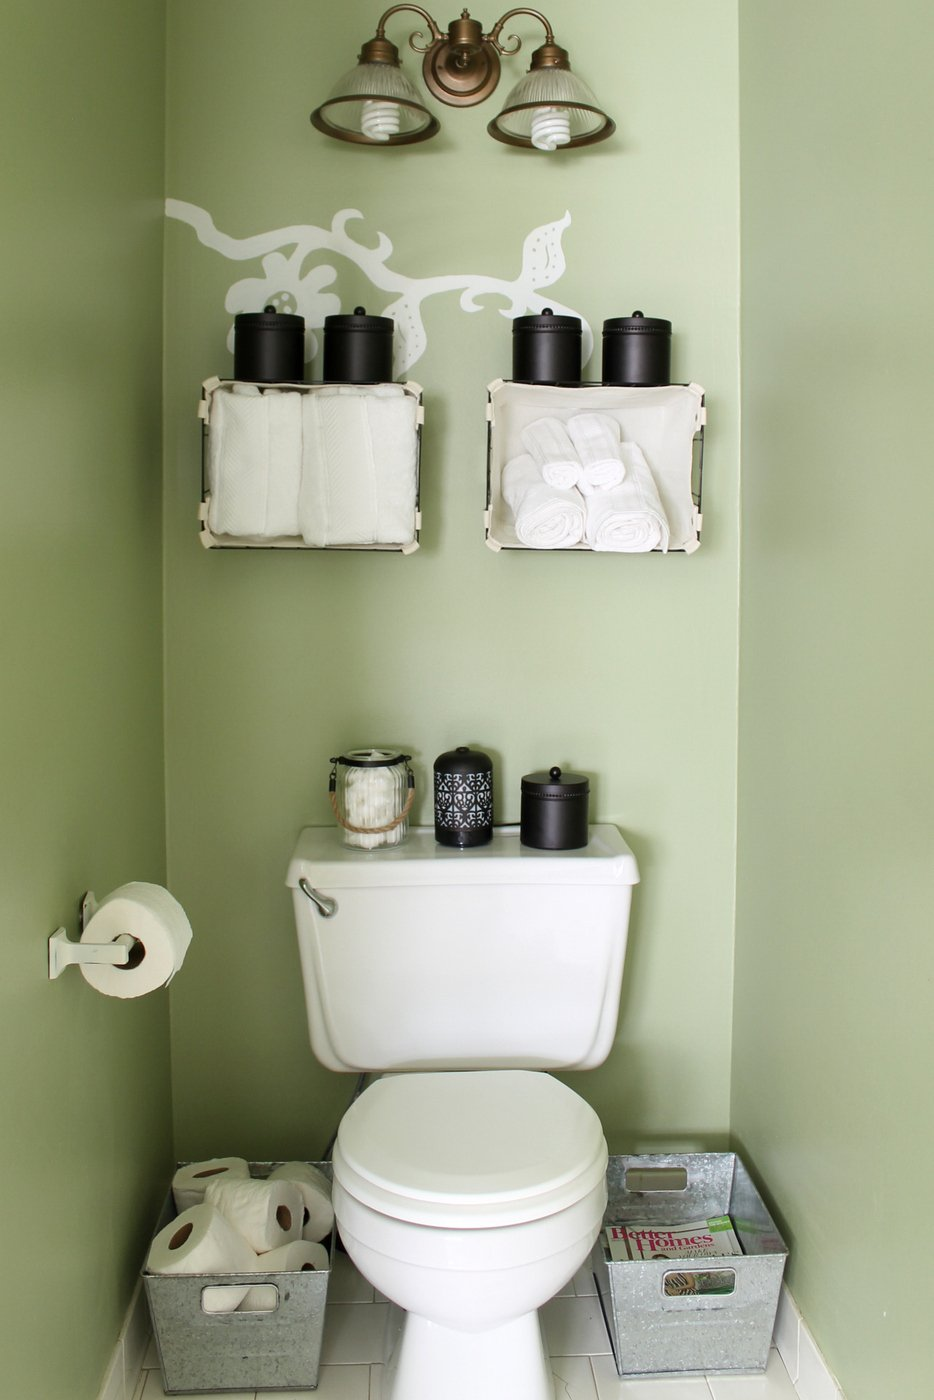 small bathroom organization ideas the country chic cottage. Black Bedroom Furniture Sets. Home Design Ideas